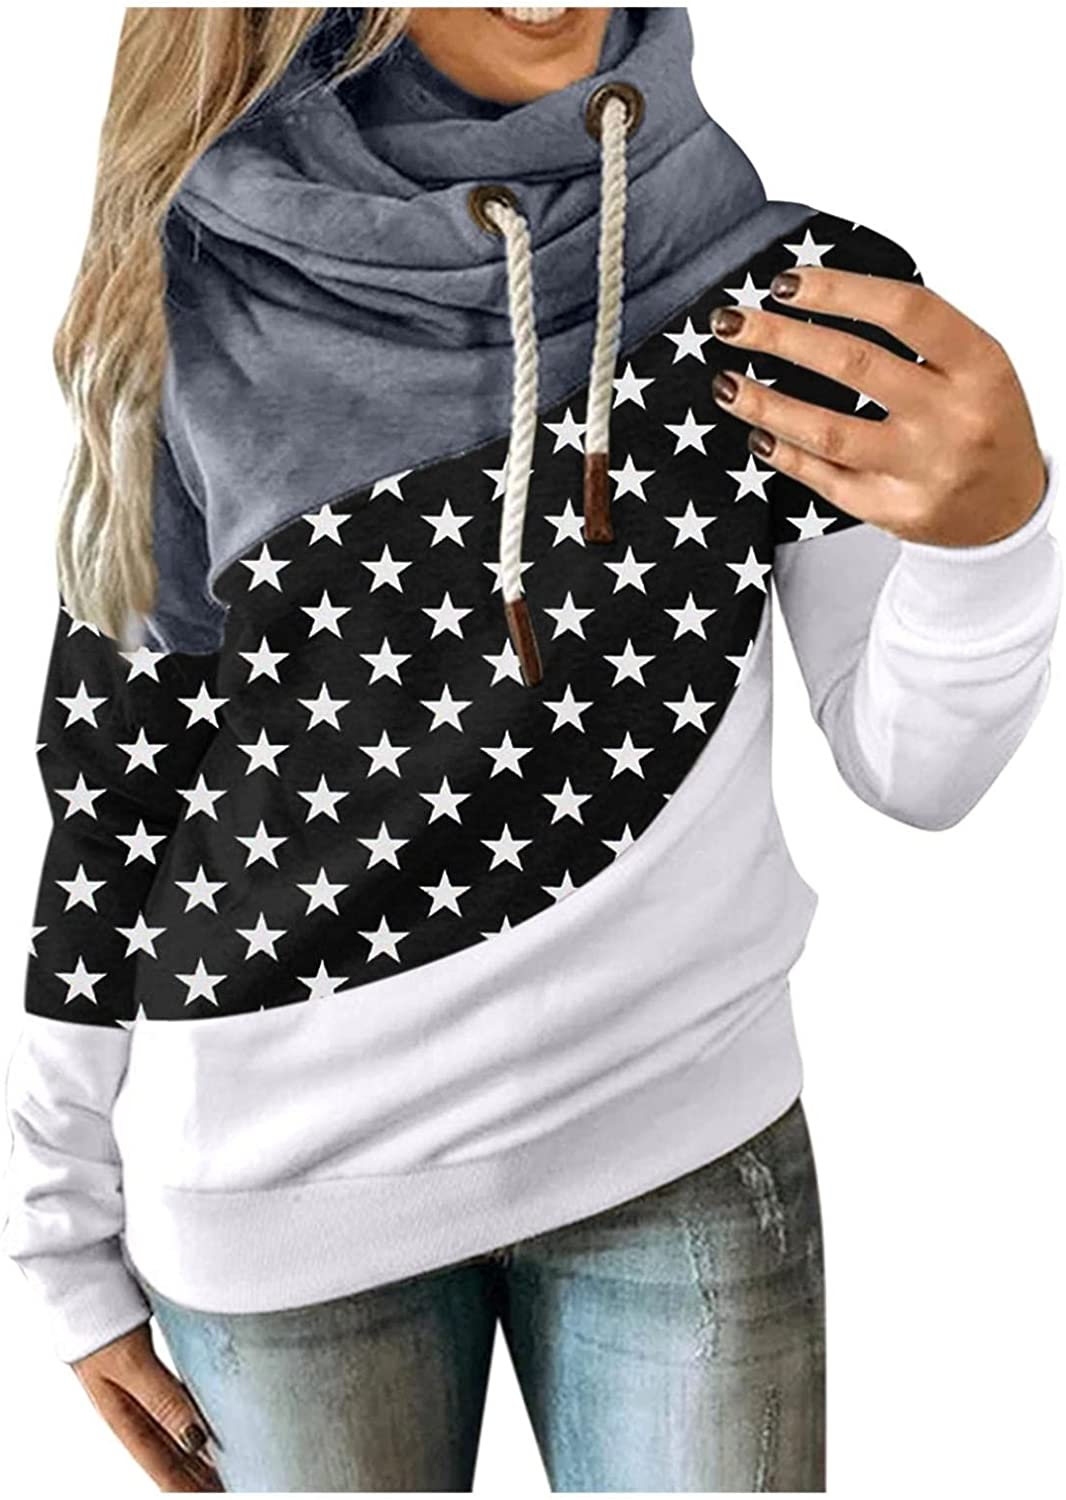 TAYBAGH Hoodies for Women Pullover, Womens Fashion Casual Star Print Plus Size Sweatshirts Long Sleeve Loose Shirts Tops